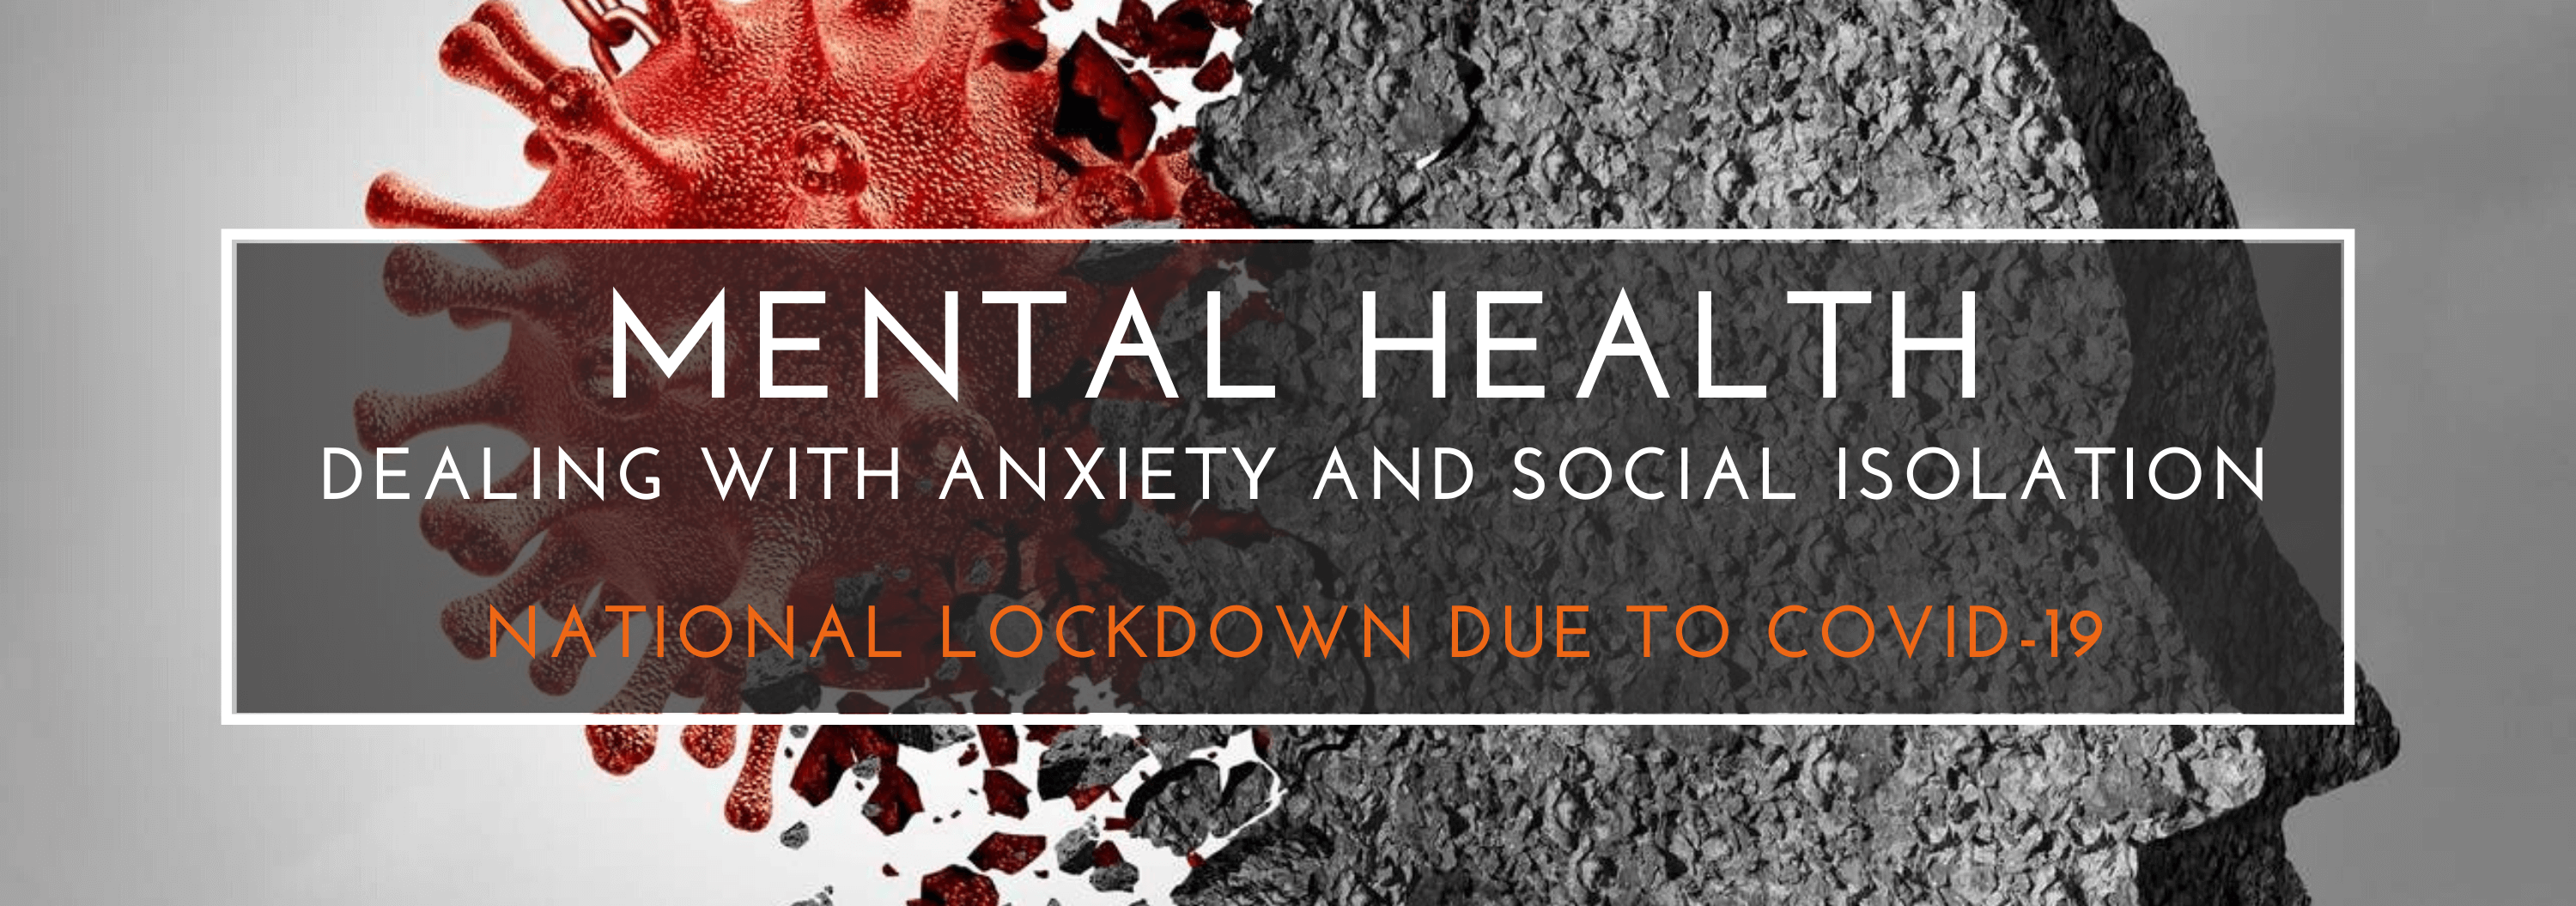 Dealing with Anxiety and Social Isolation